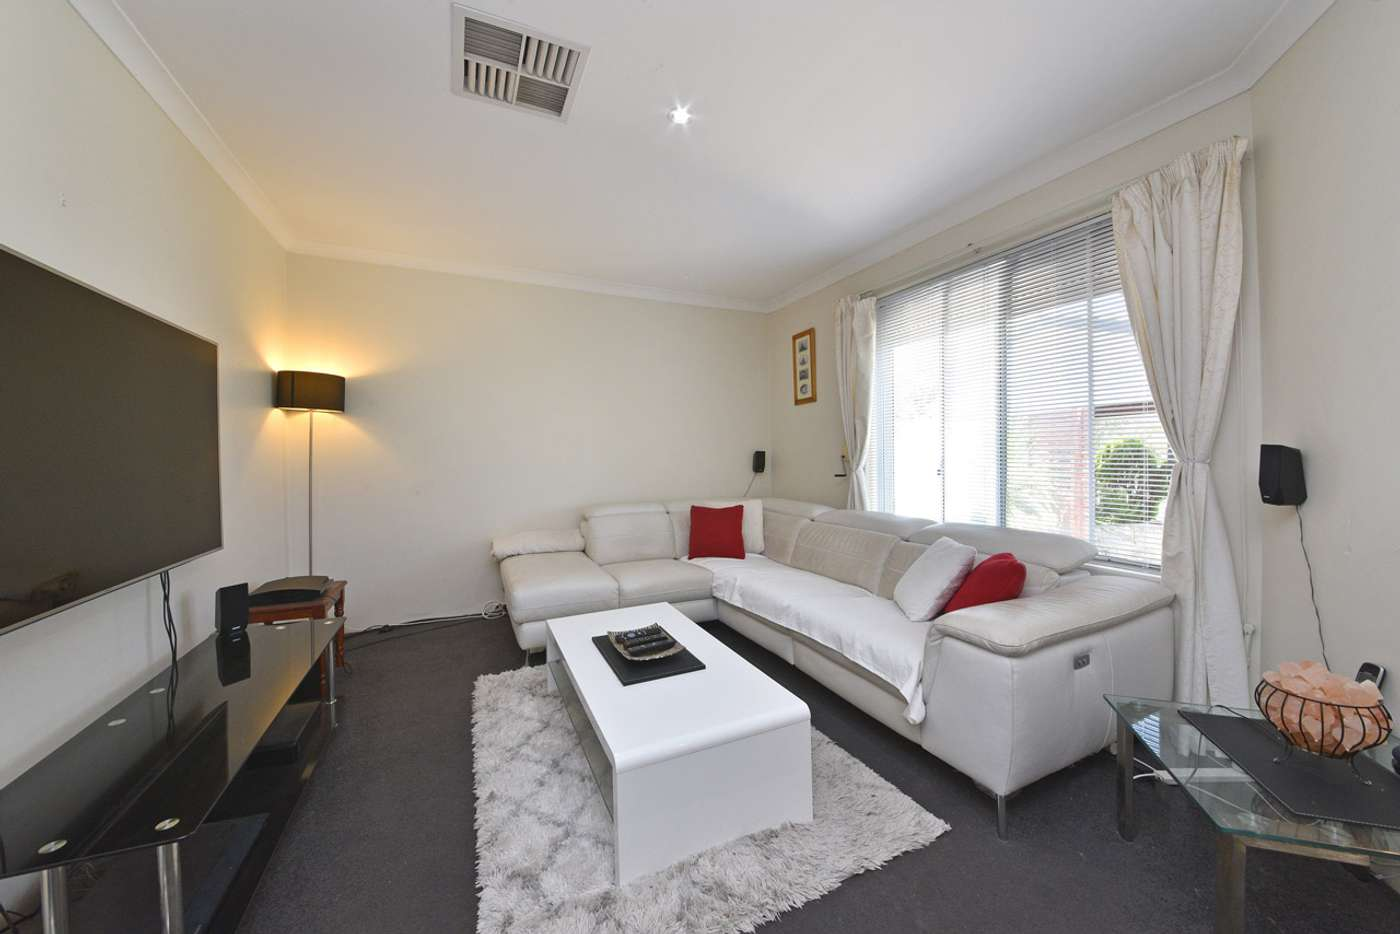 Seventh view of Homely house listing, 17 Falkirk Court, Kinross WA 6028